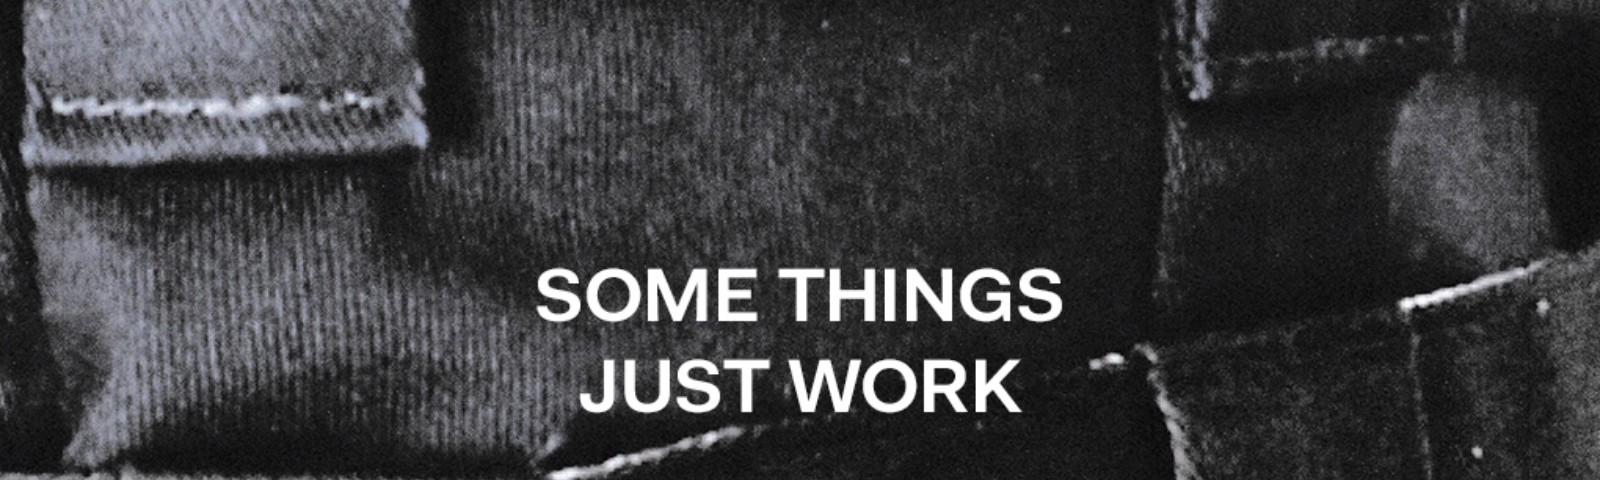 Some Things Just Work Charlotte Graham Moss Andre Titcombe THE DAILY STREET 01